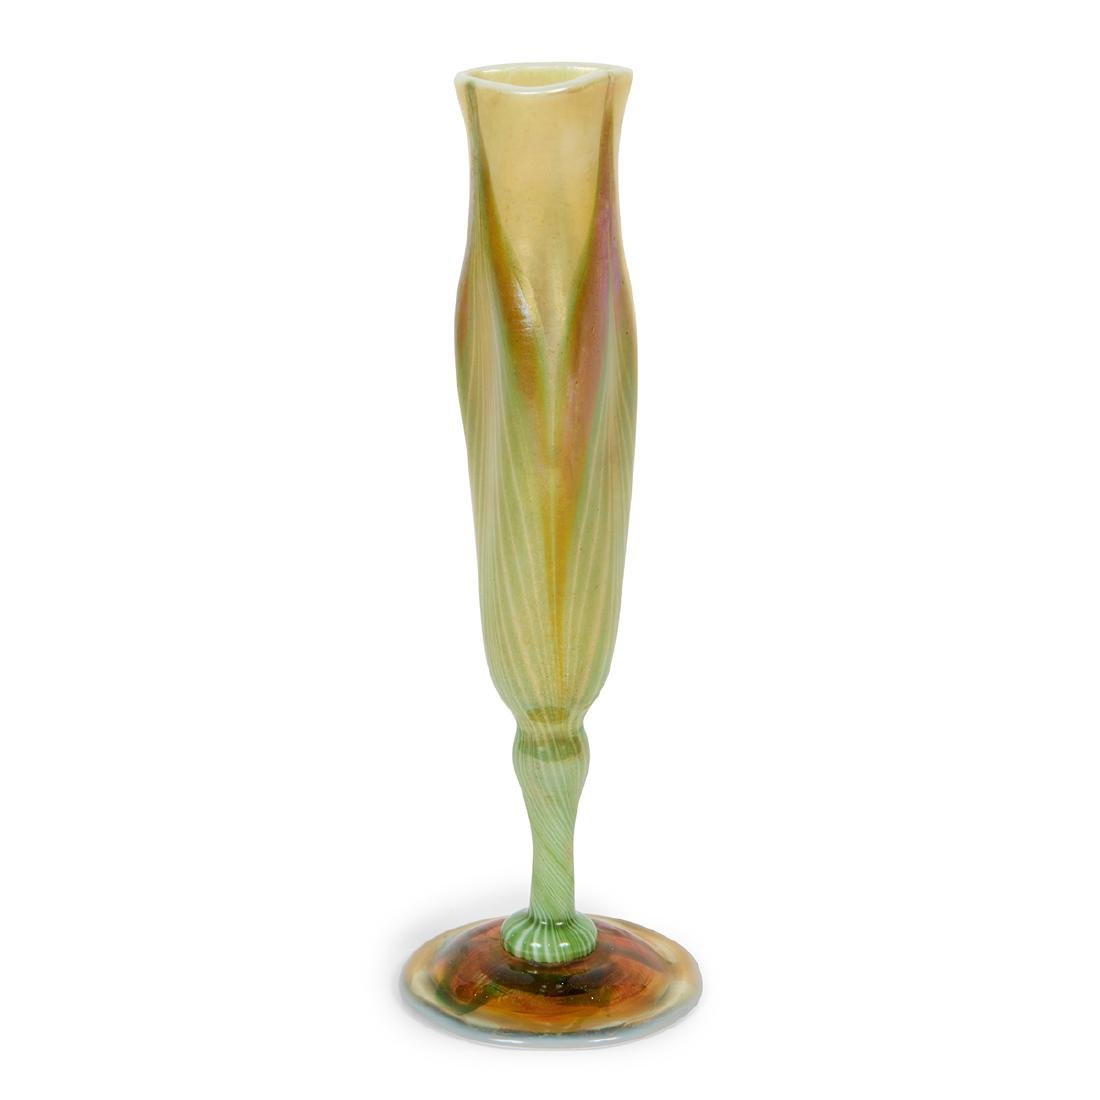 L.C. Tiffany Favrile Pulled Feather bud vase